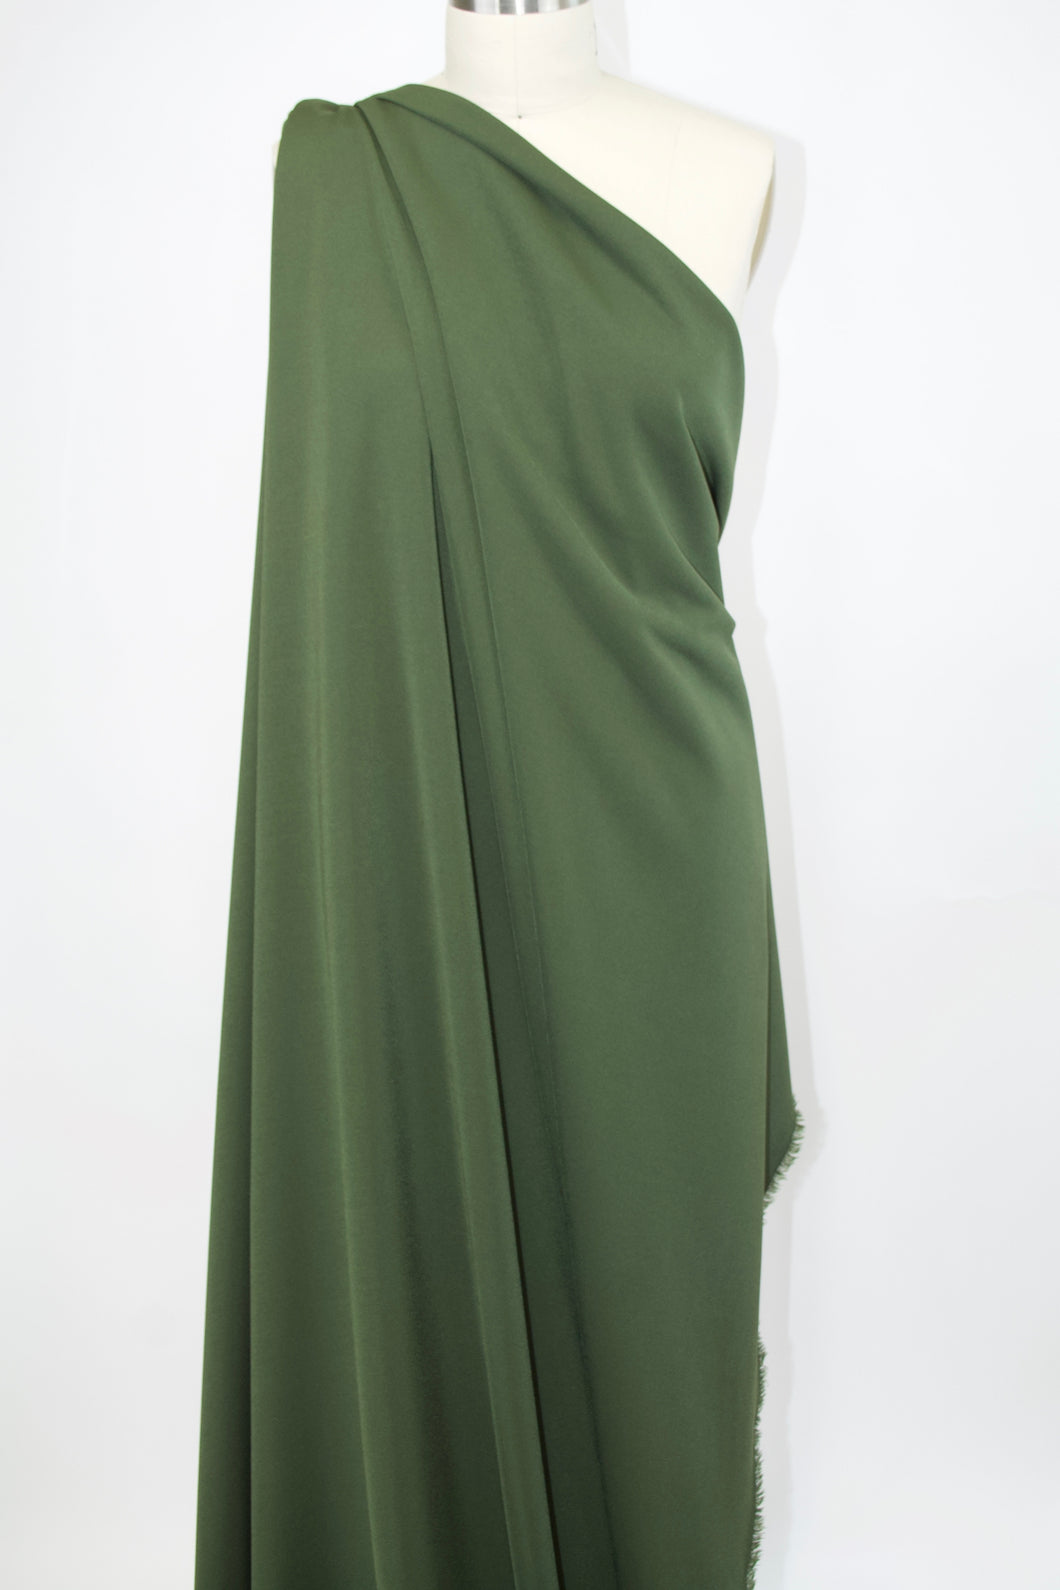 Designer Rayon Double Knit - Chive Green